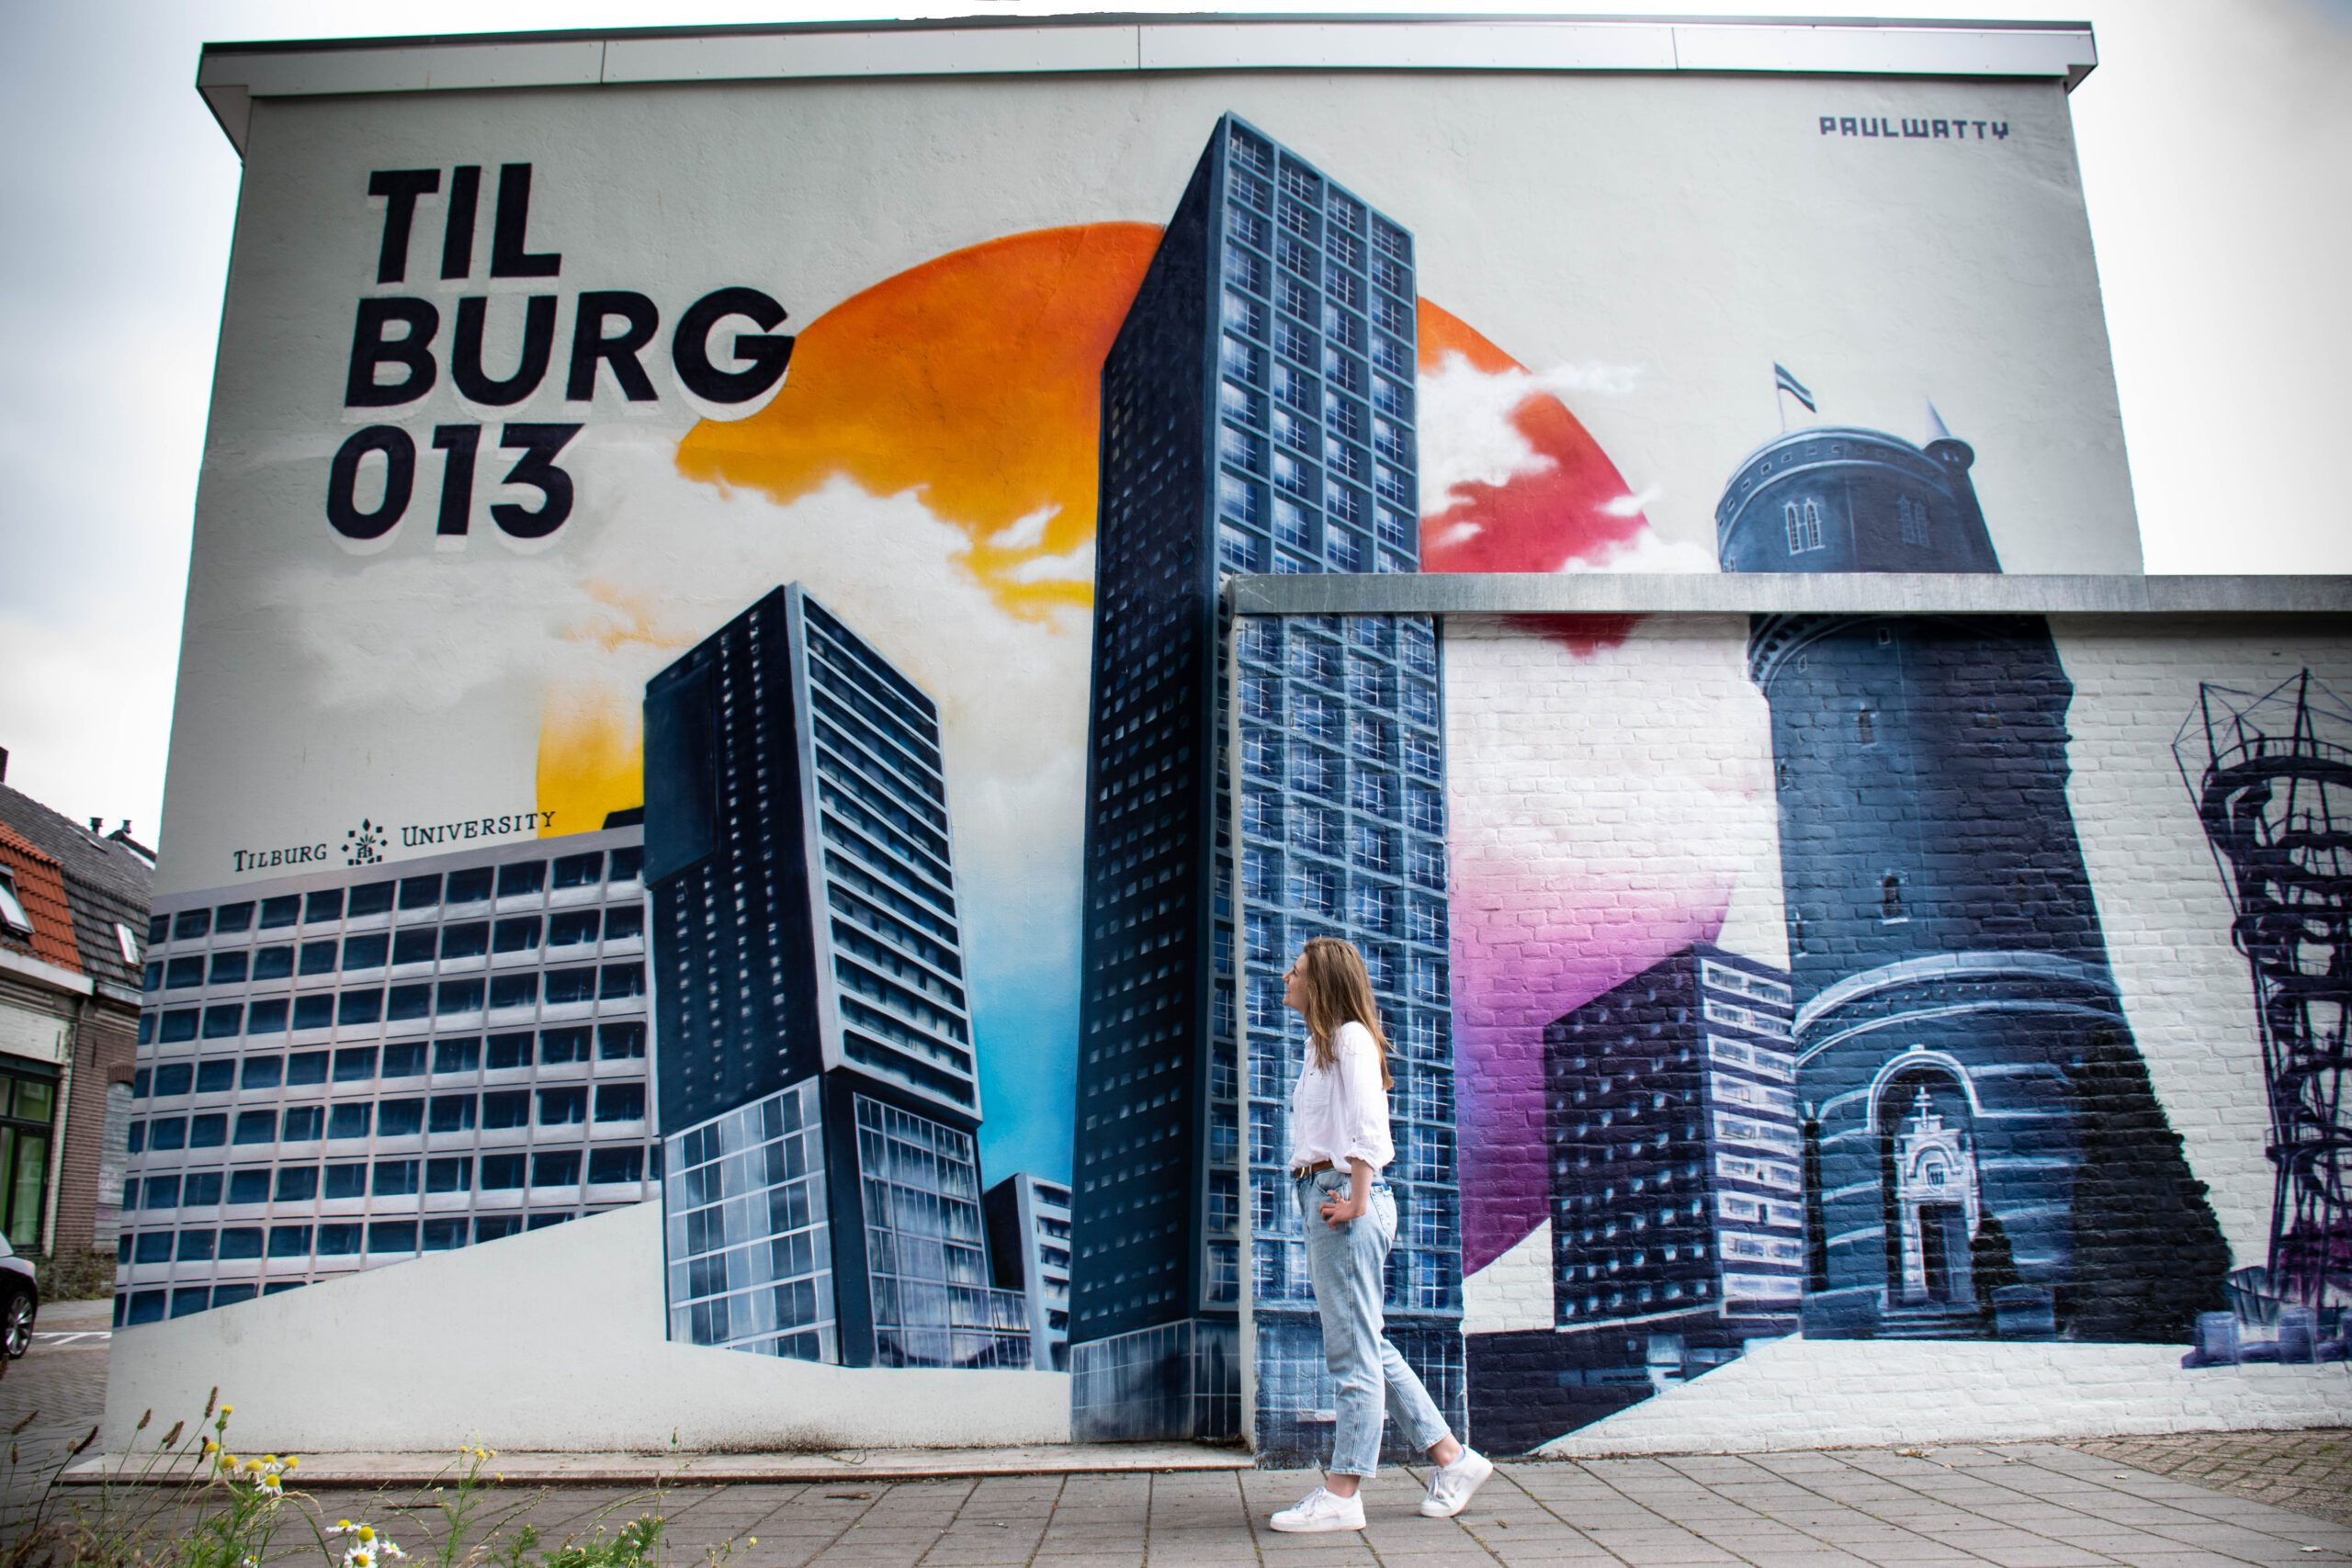 magical-murals-photo-of-a-house-with-a-mural-tilburg-ostrich